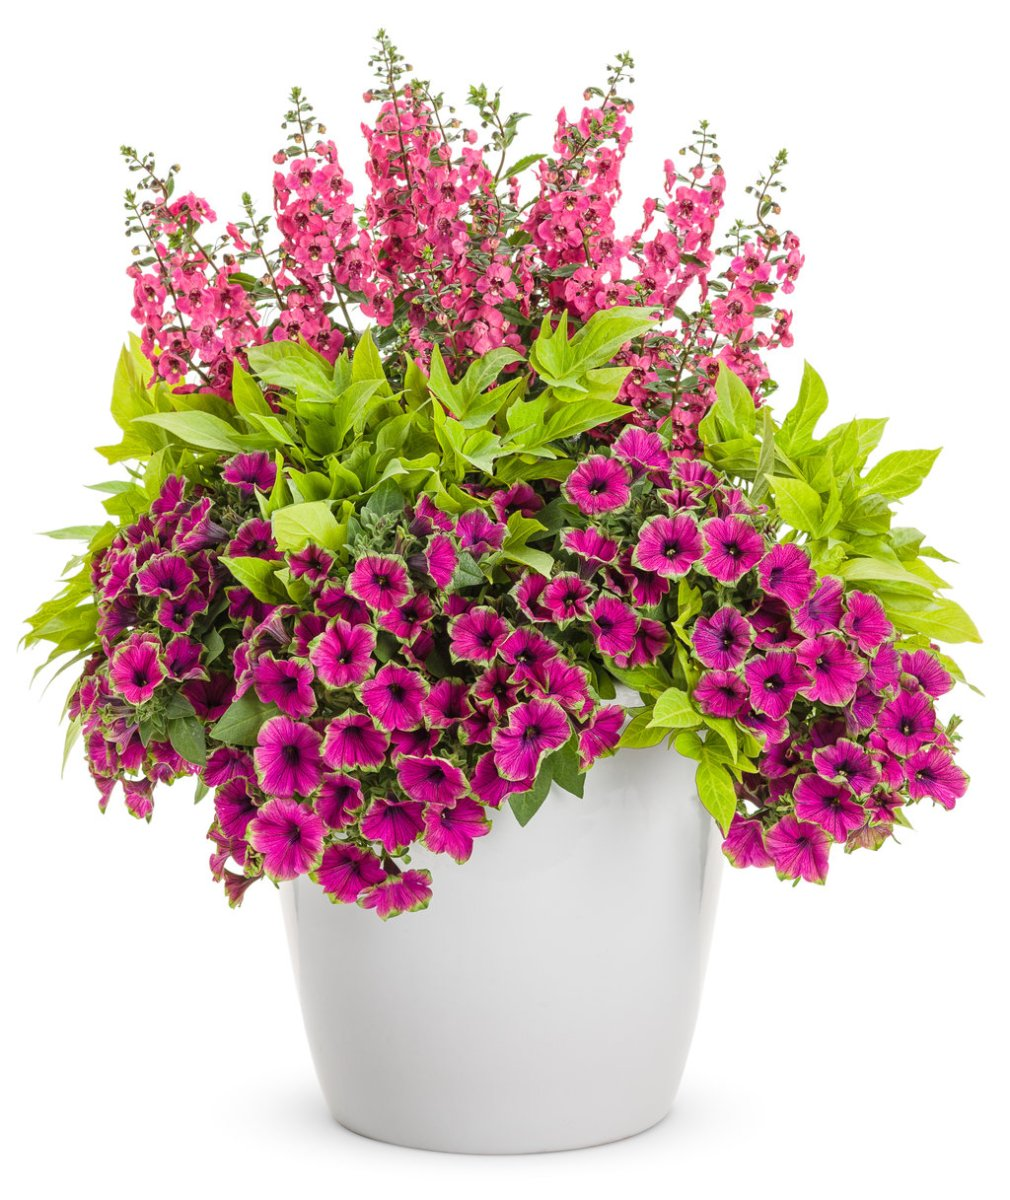 Supertunia Picasso in Purple in a mixed container planting.